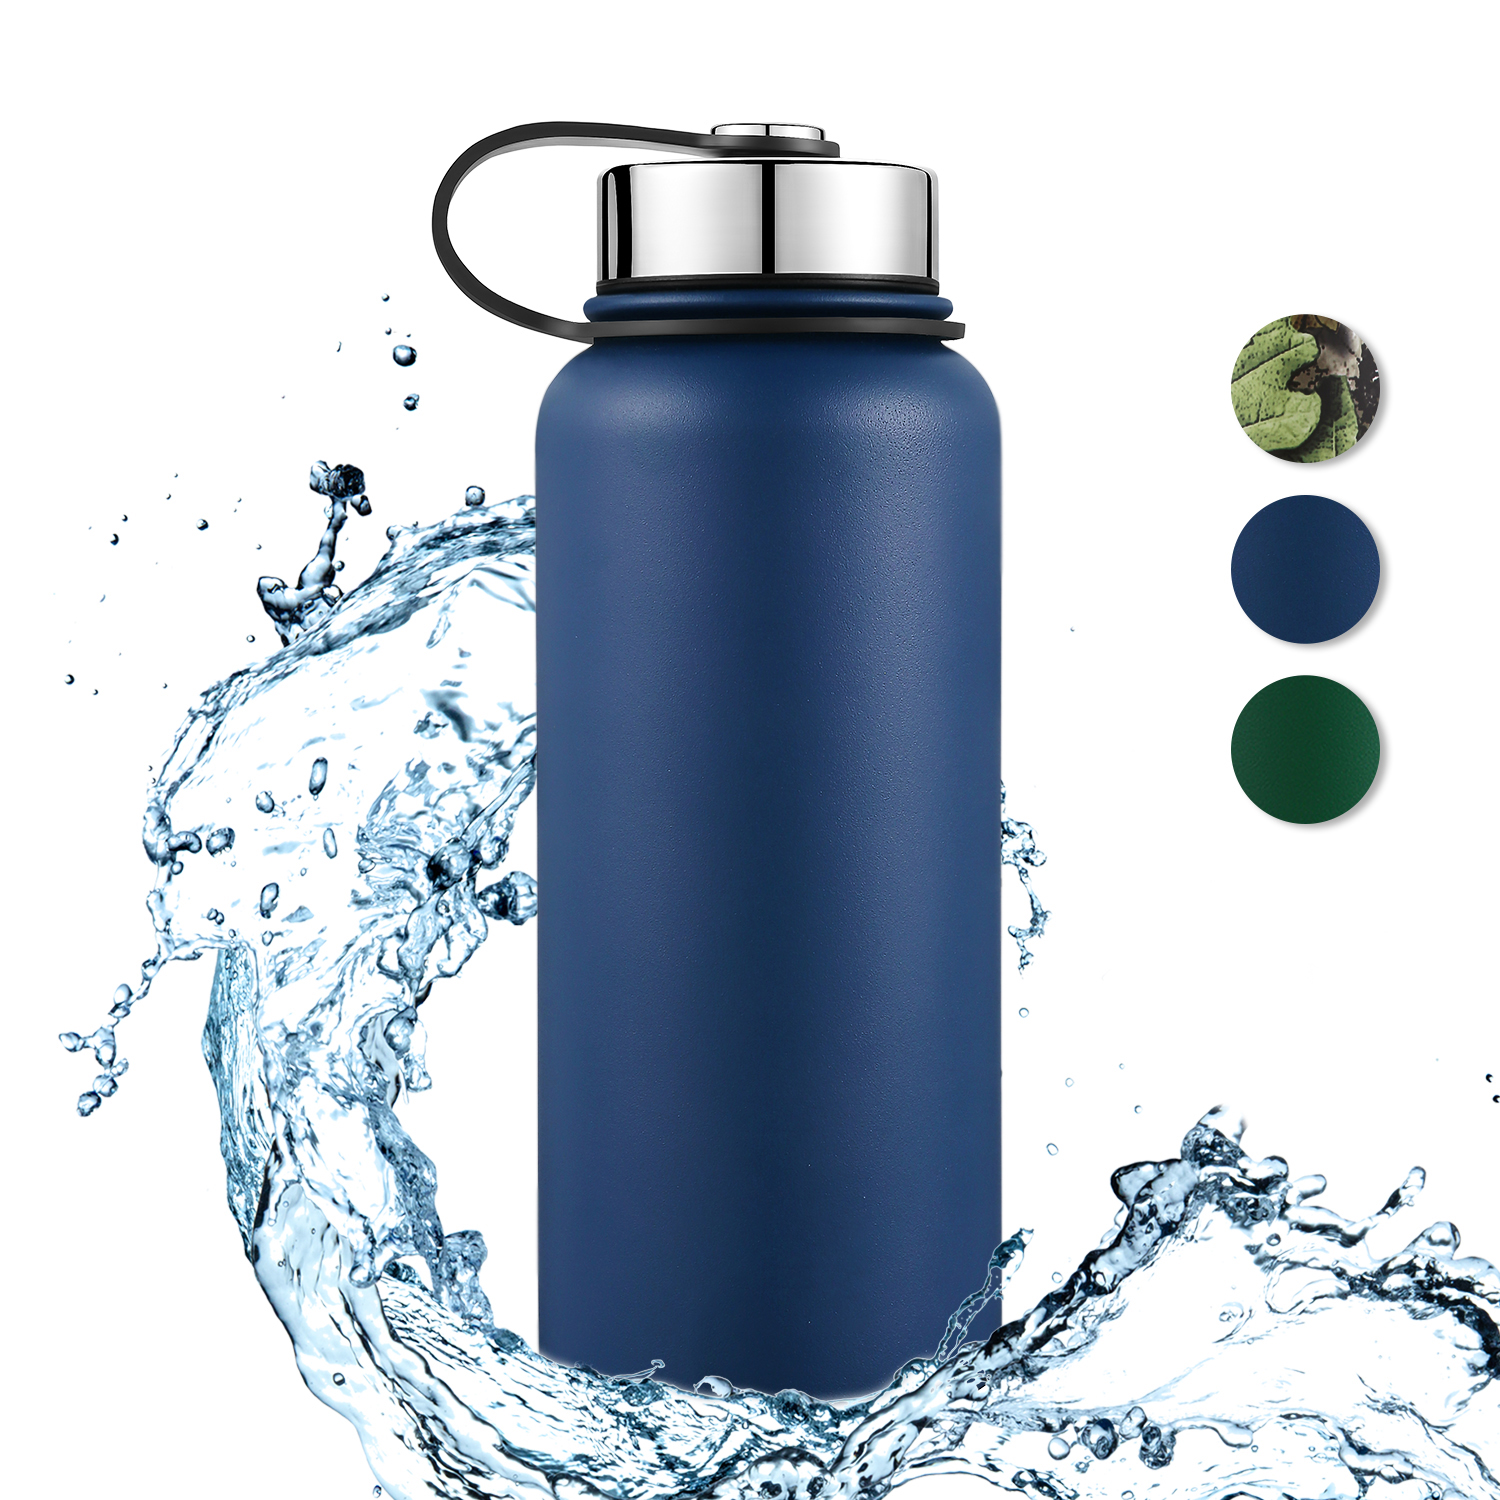 32 OZ Double Wall Stainless Steel Insulated Wide Mouth Water Bottle